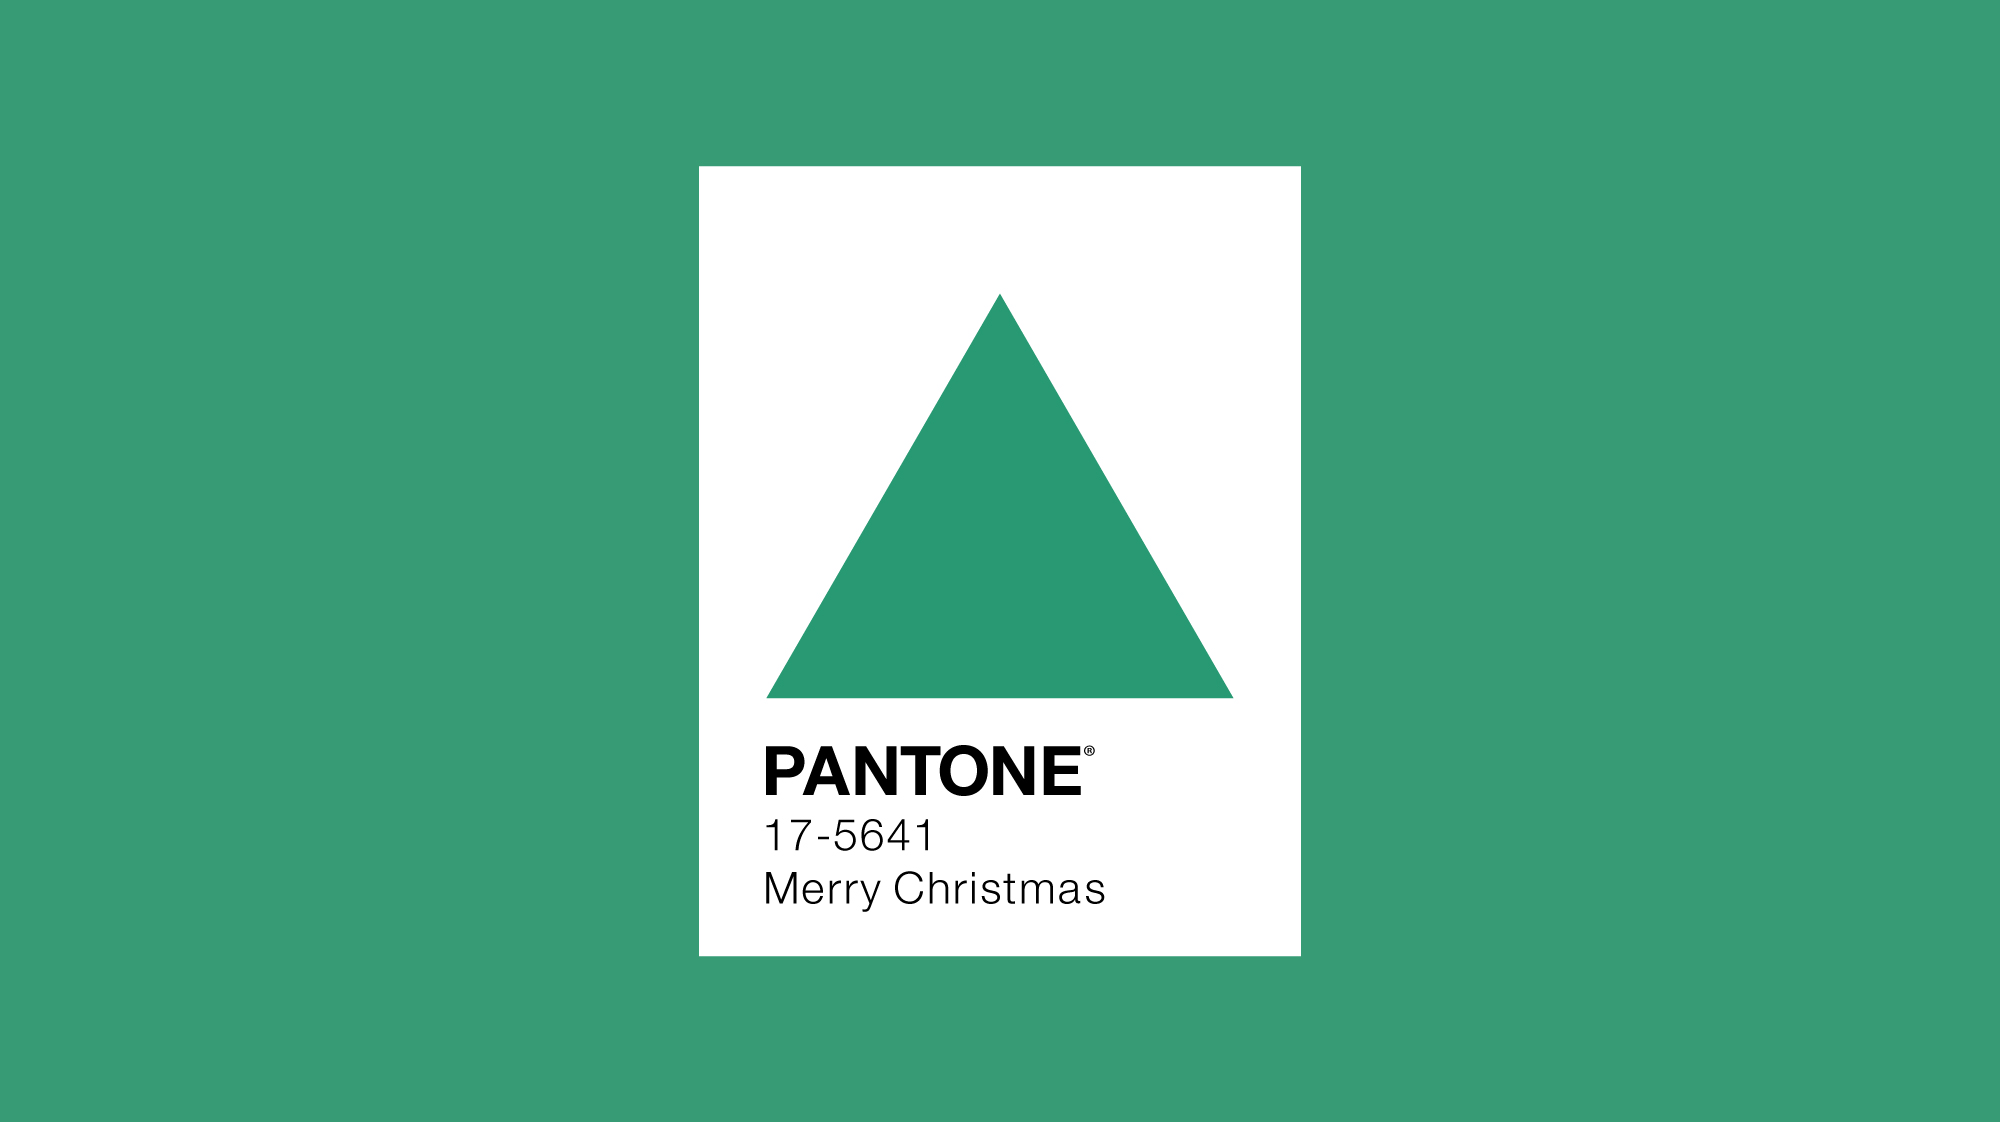 Pantone colour of the year 2013 minimal design with Christmas tree